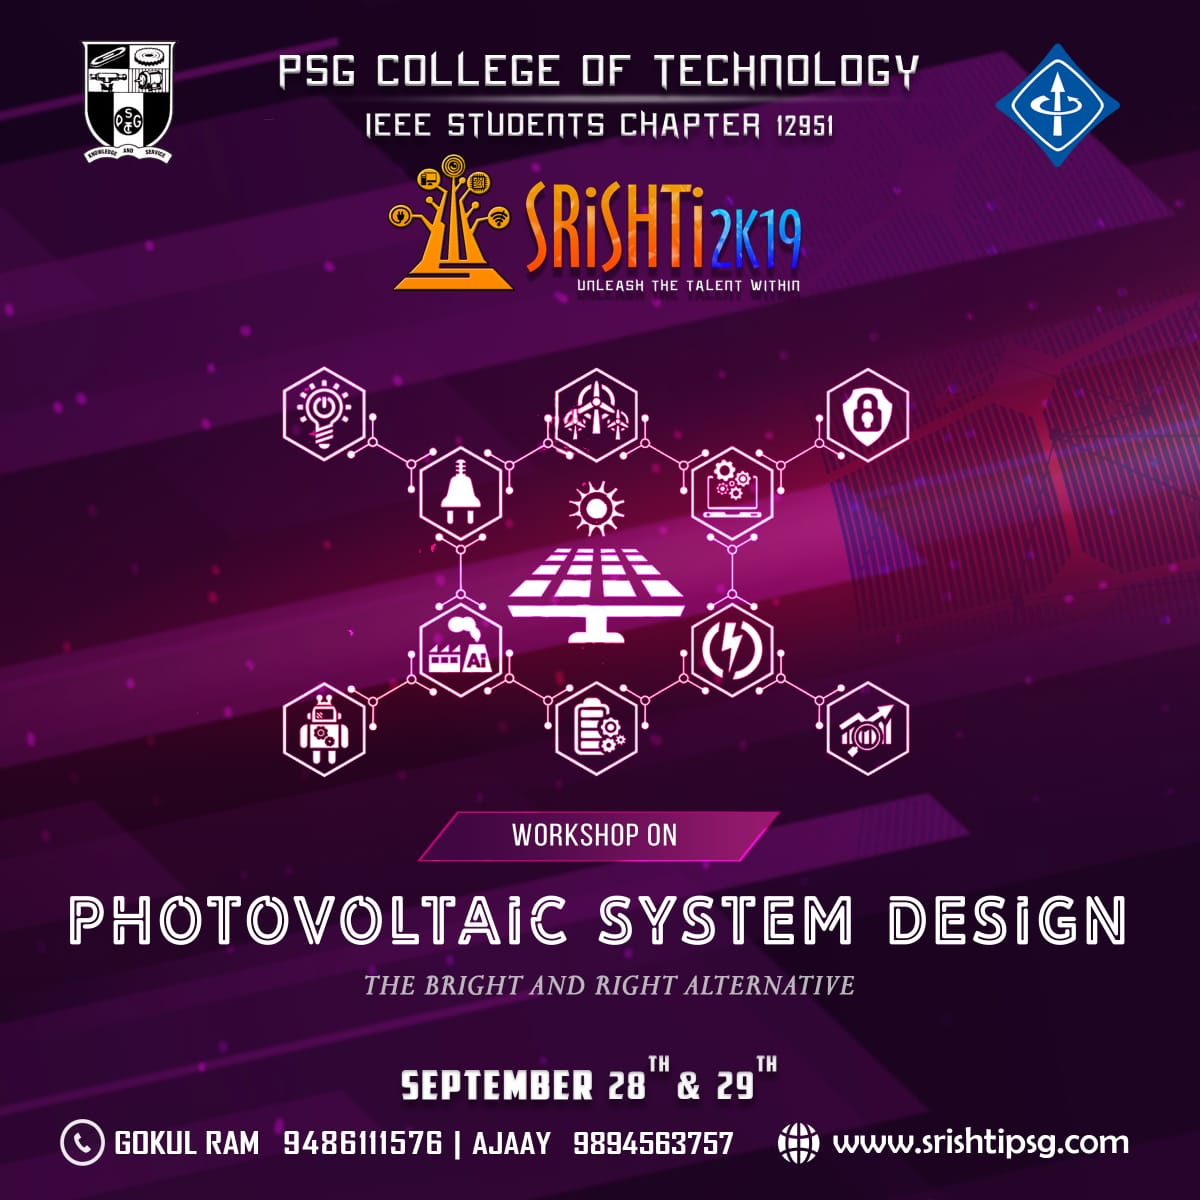 Photovoltaic System Design 2019